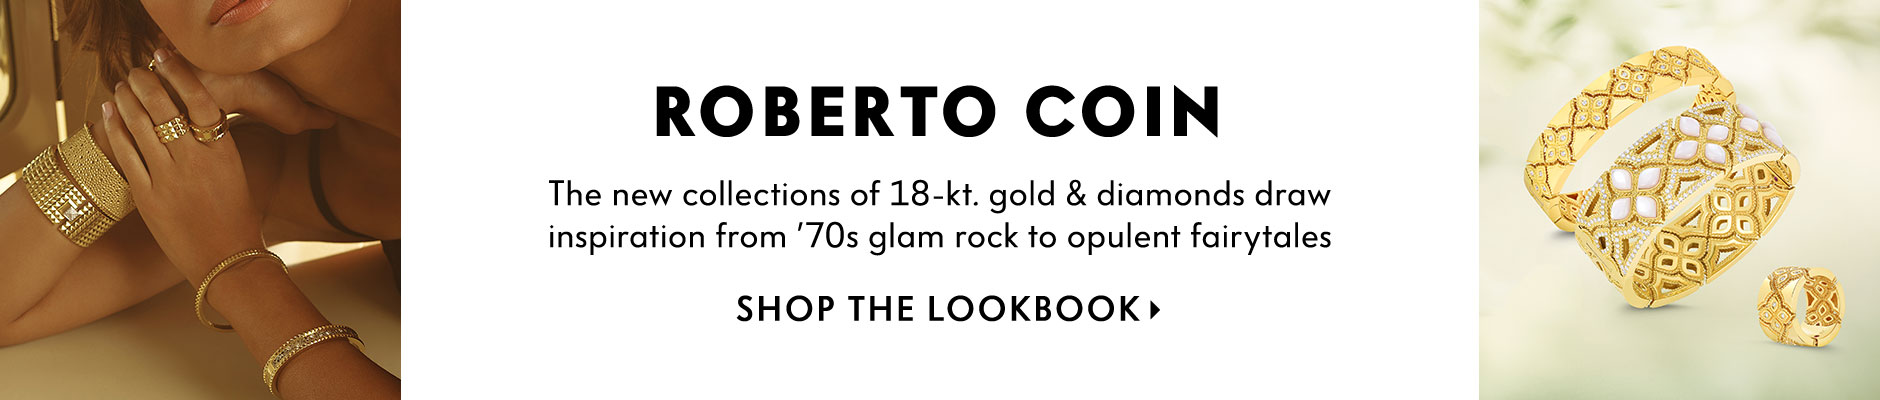 Roberto Coin Lookbook